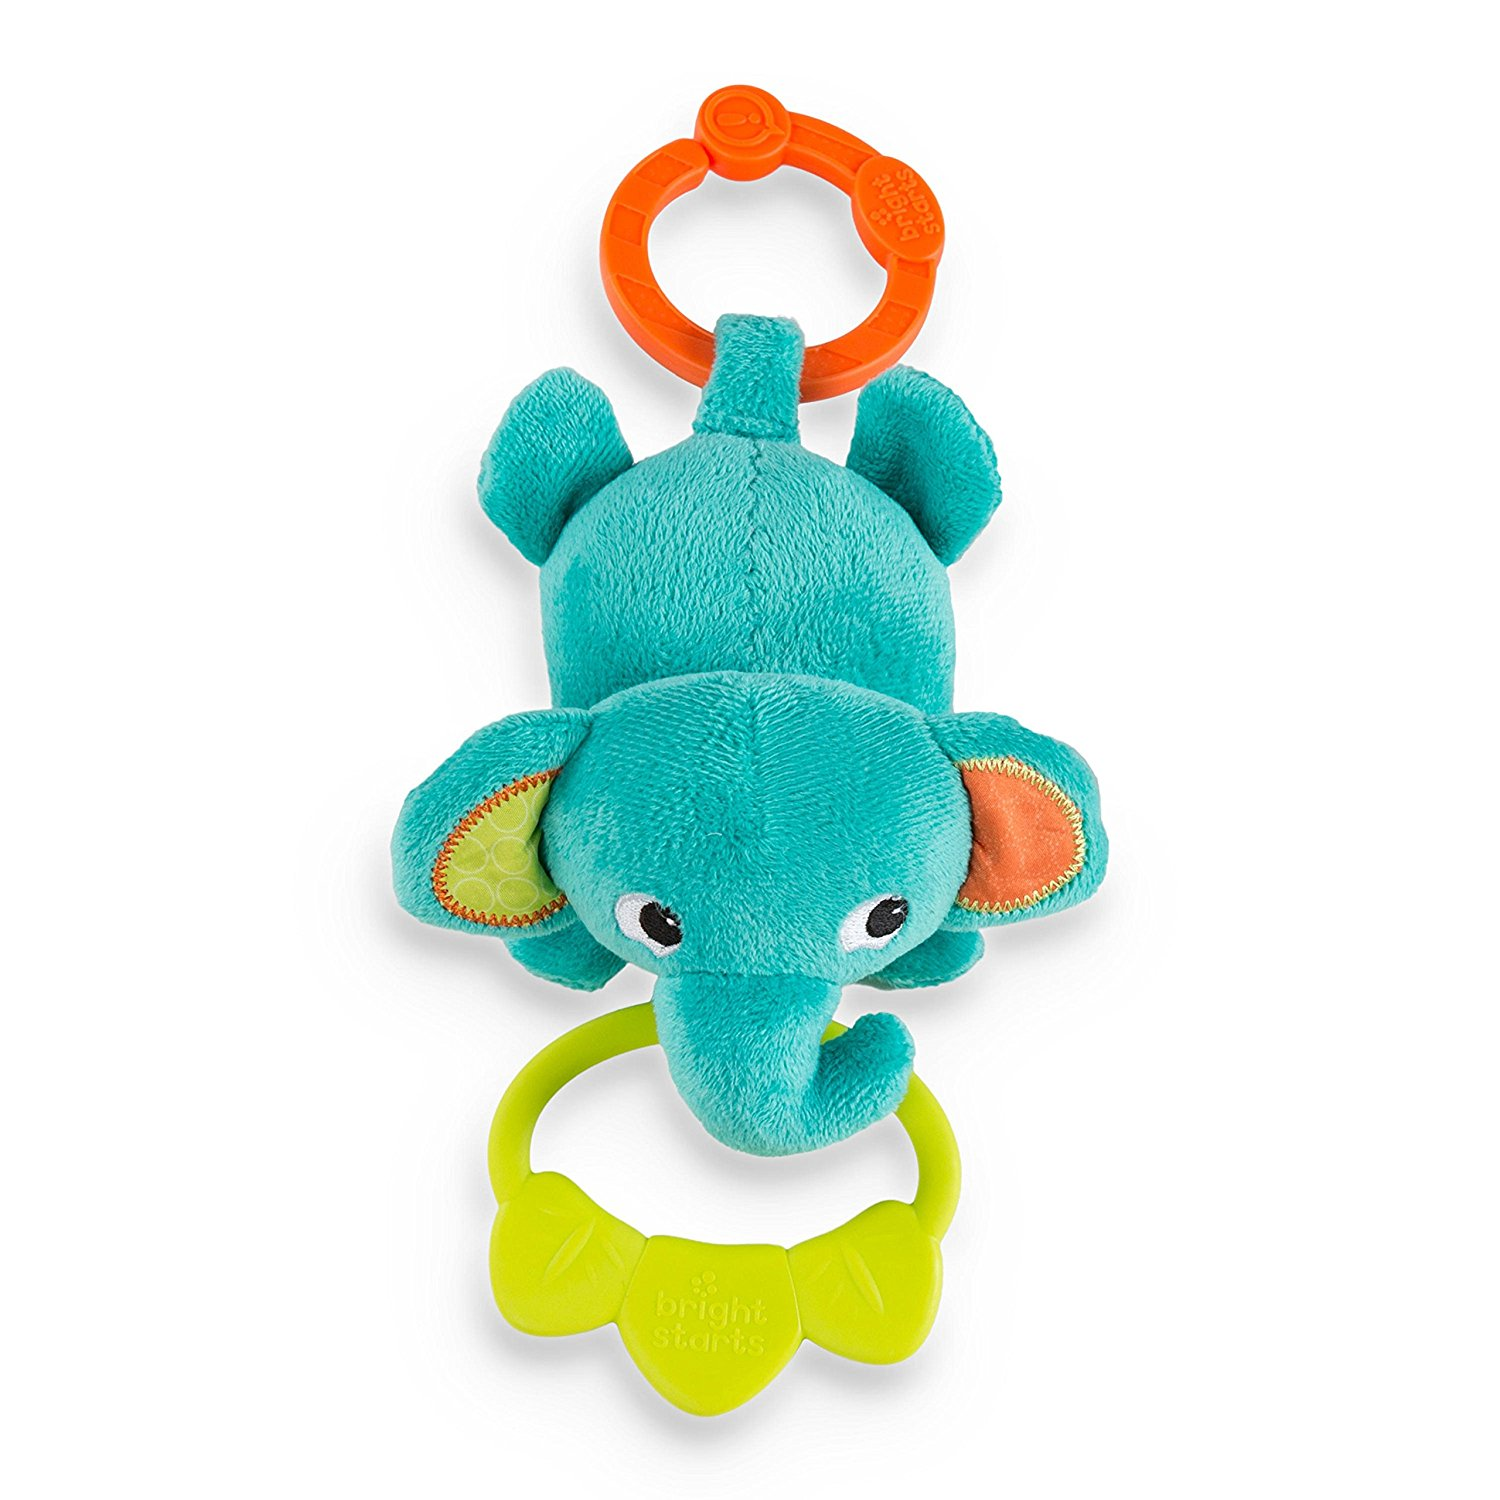 Bright Starts Tug Tunes Musical Plush Toy Elephant by Bright Starts